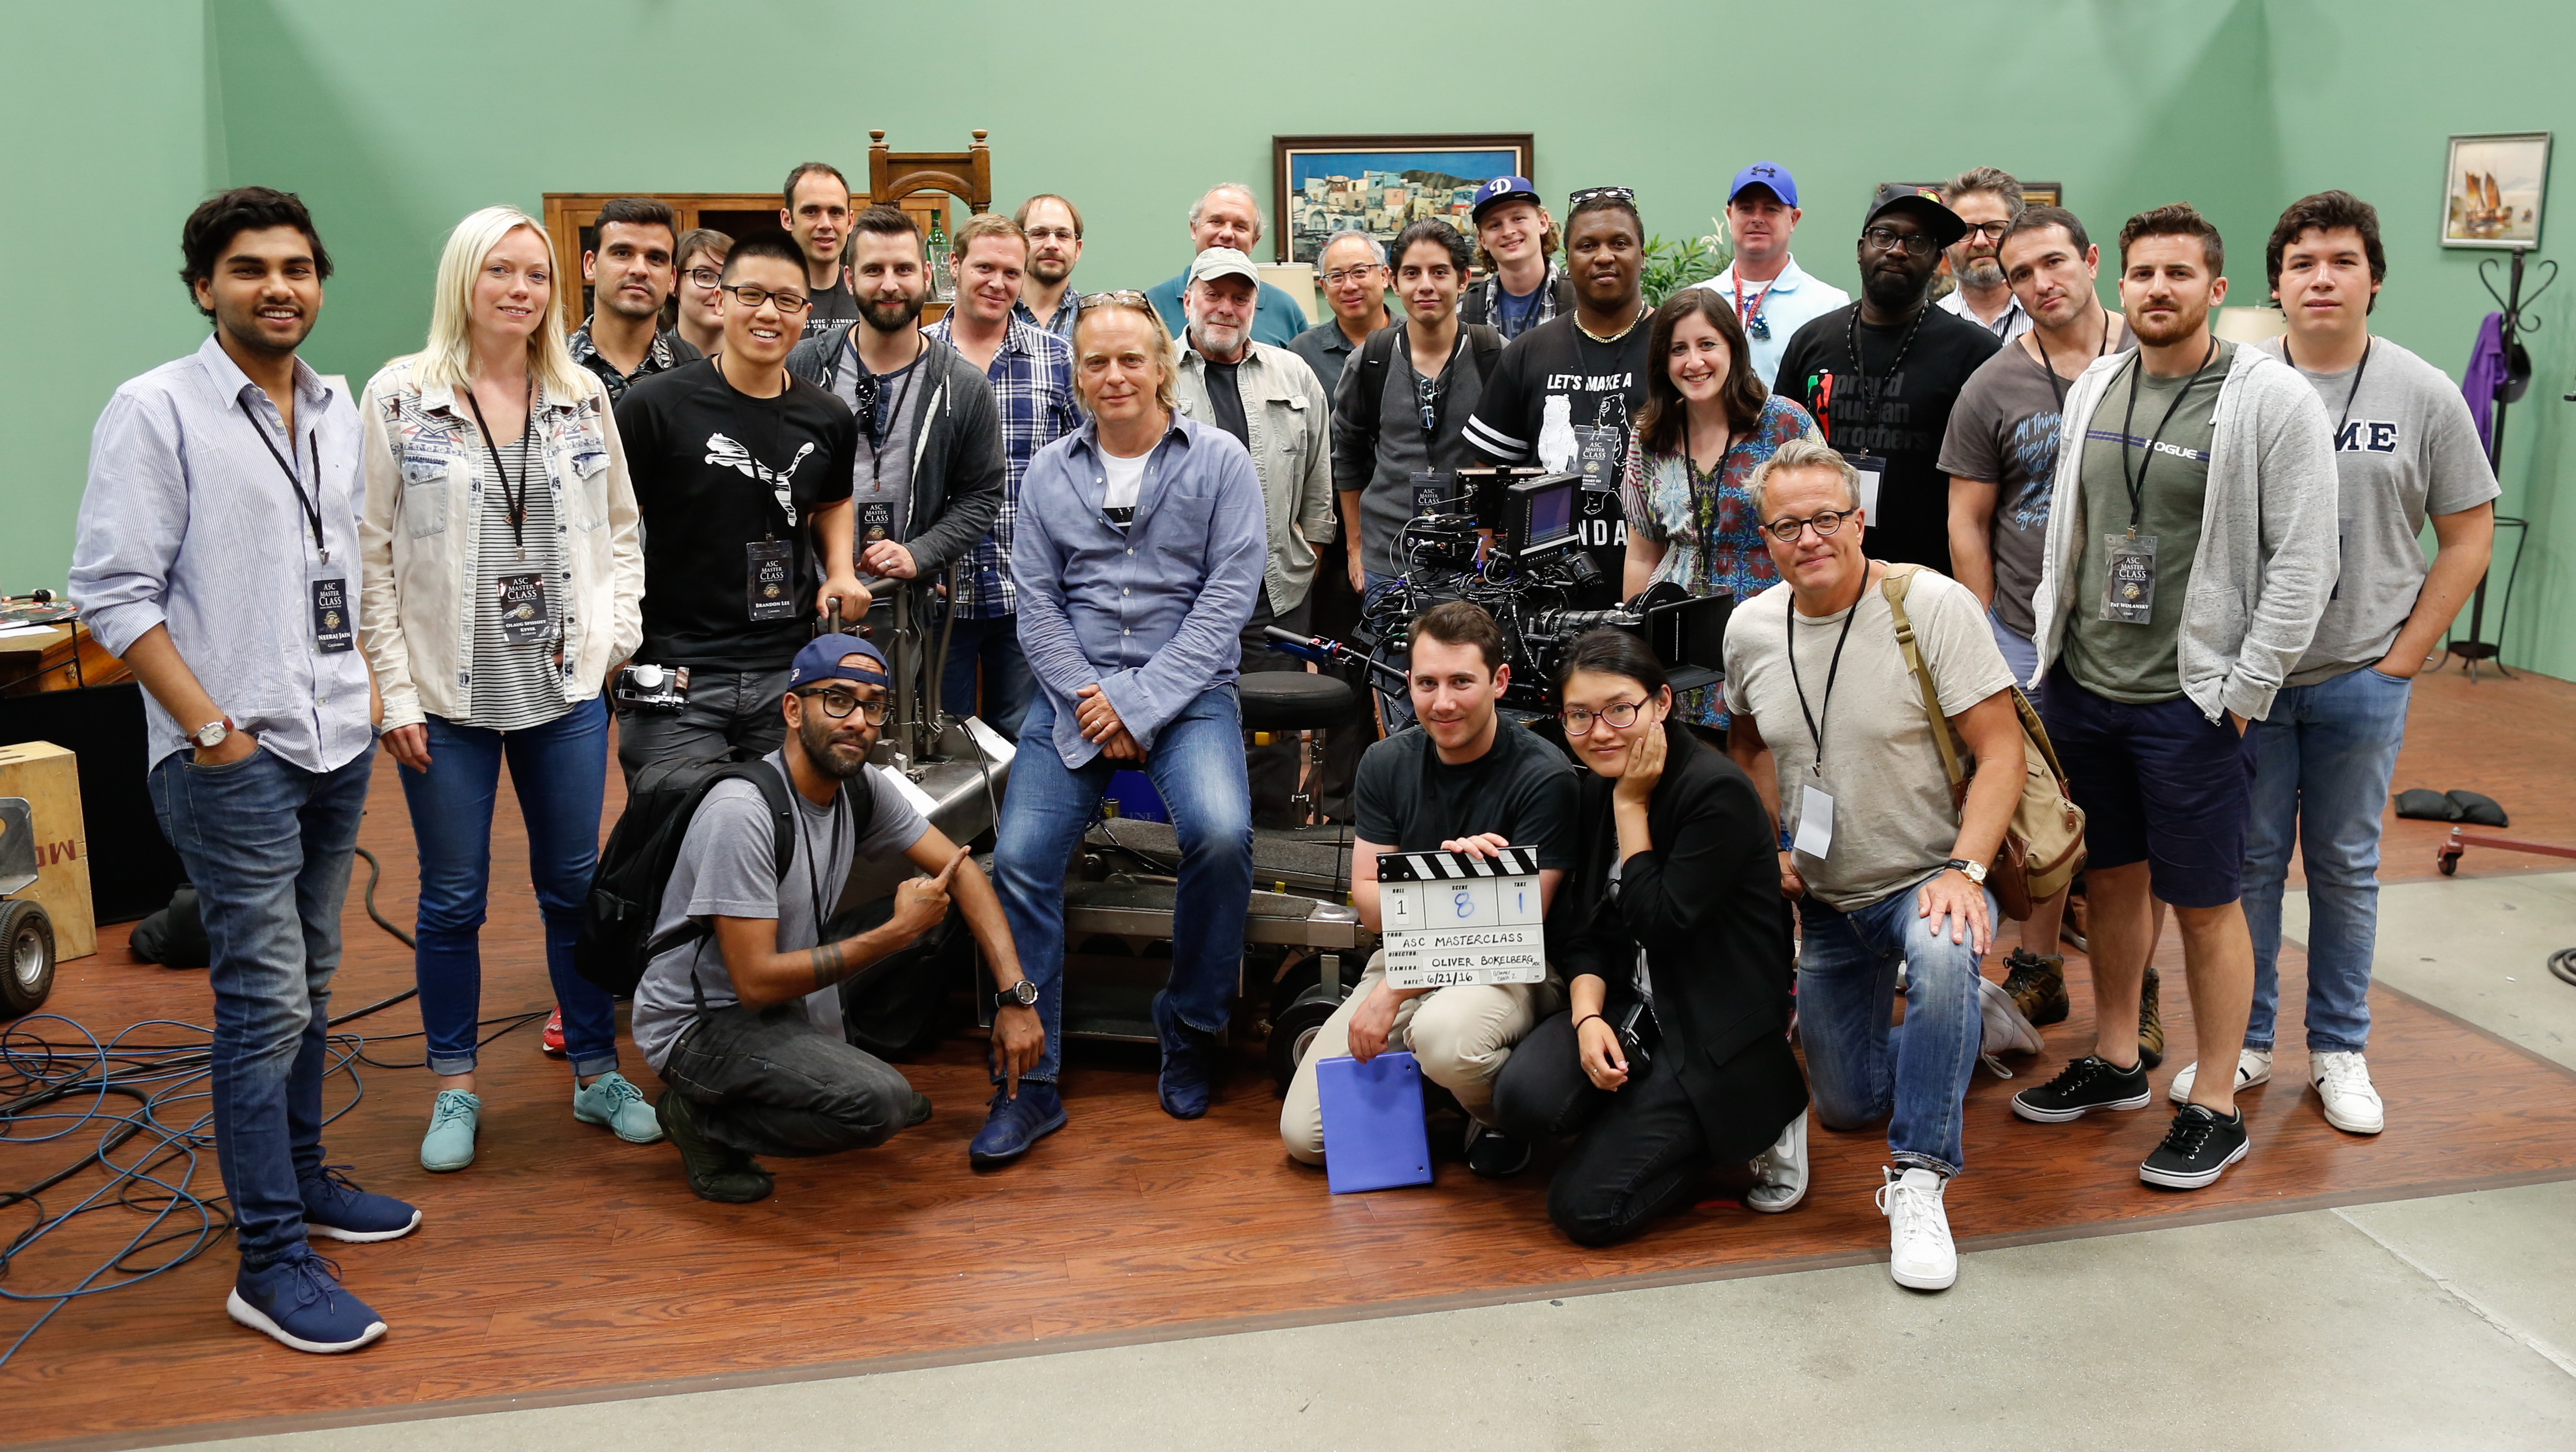 Oliver Bokelberg, ASC, BVK and the June 2016 Master Class participants.